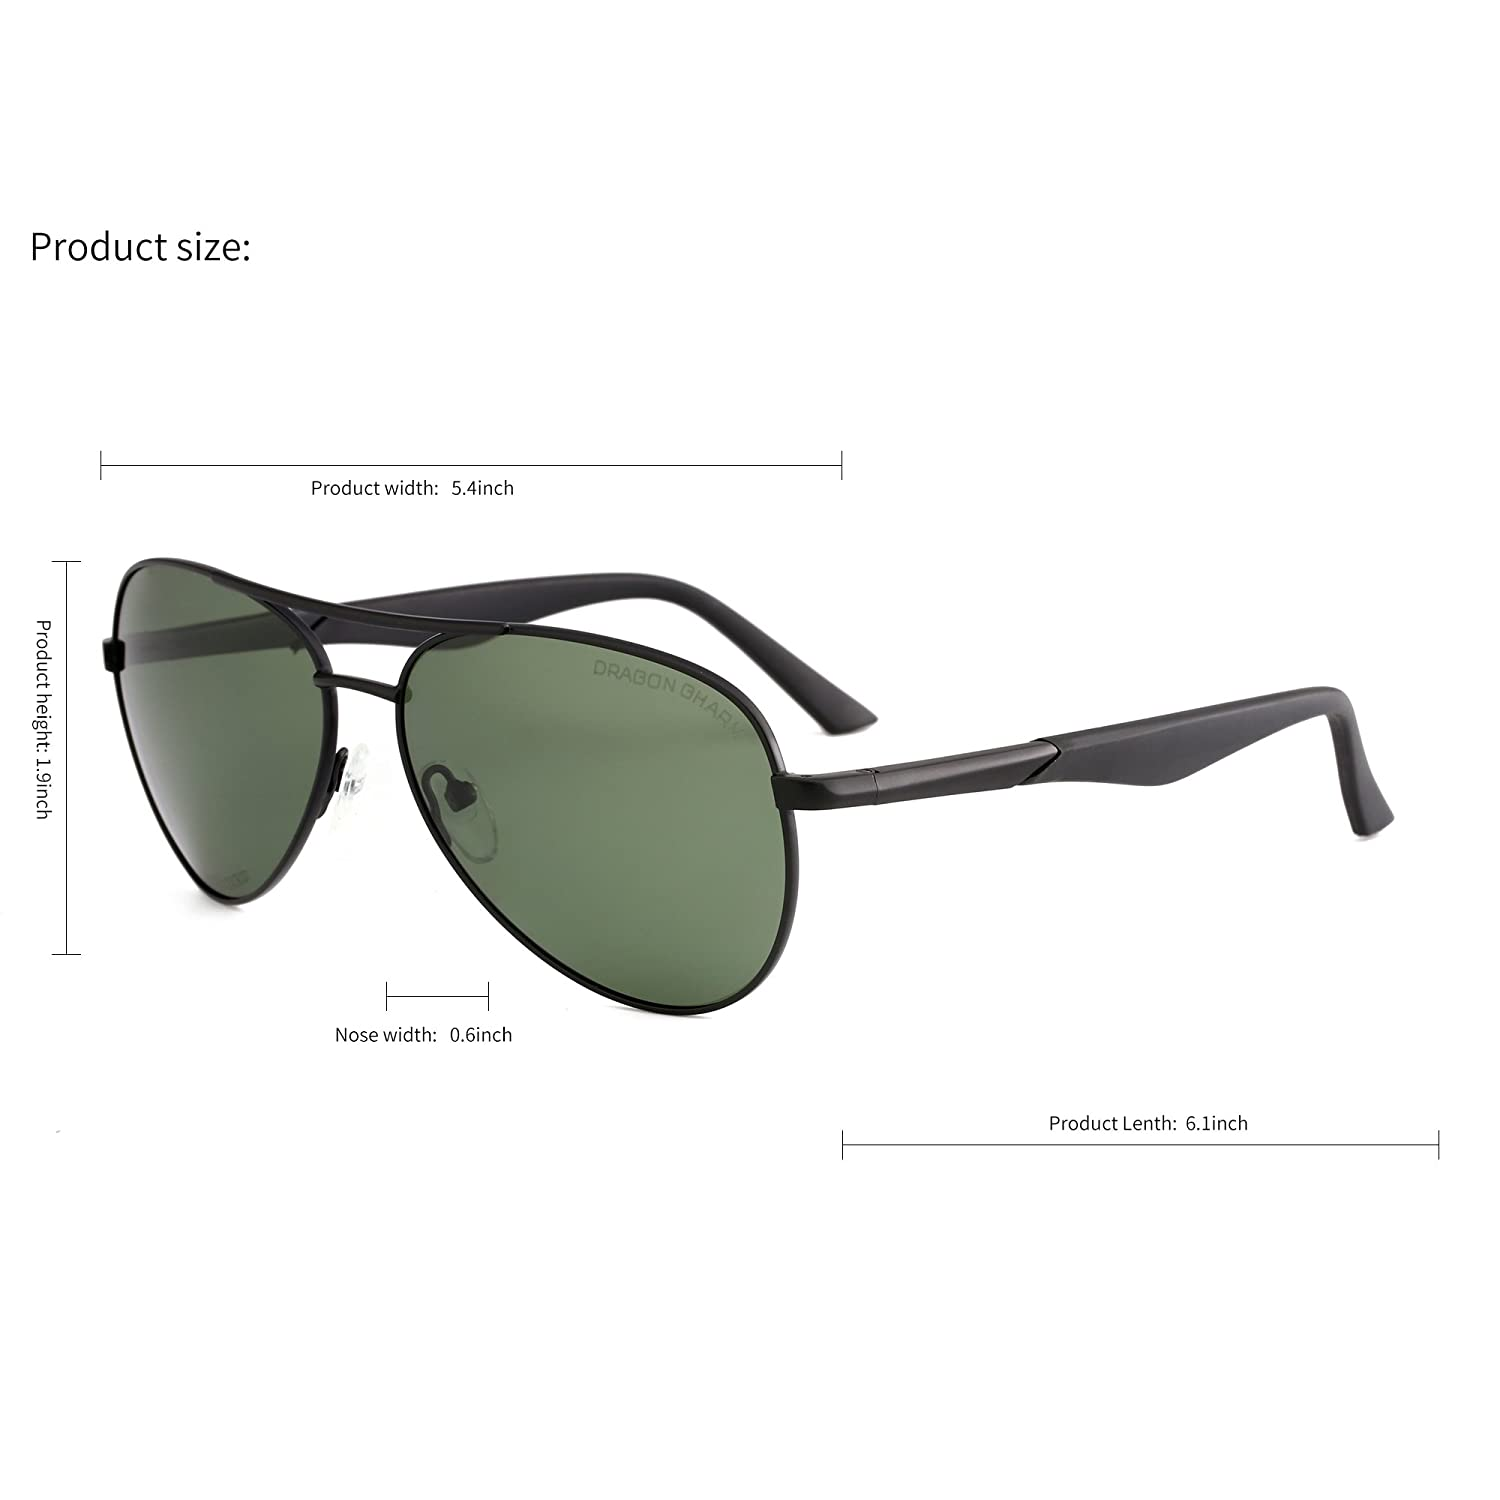 607ddc95bd Amazon.com  DRAGON CHARM Aviator Metal Frame Sunglasses Polarized UV400  Protection AM2360  Clothing